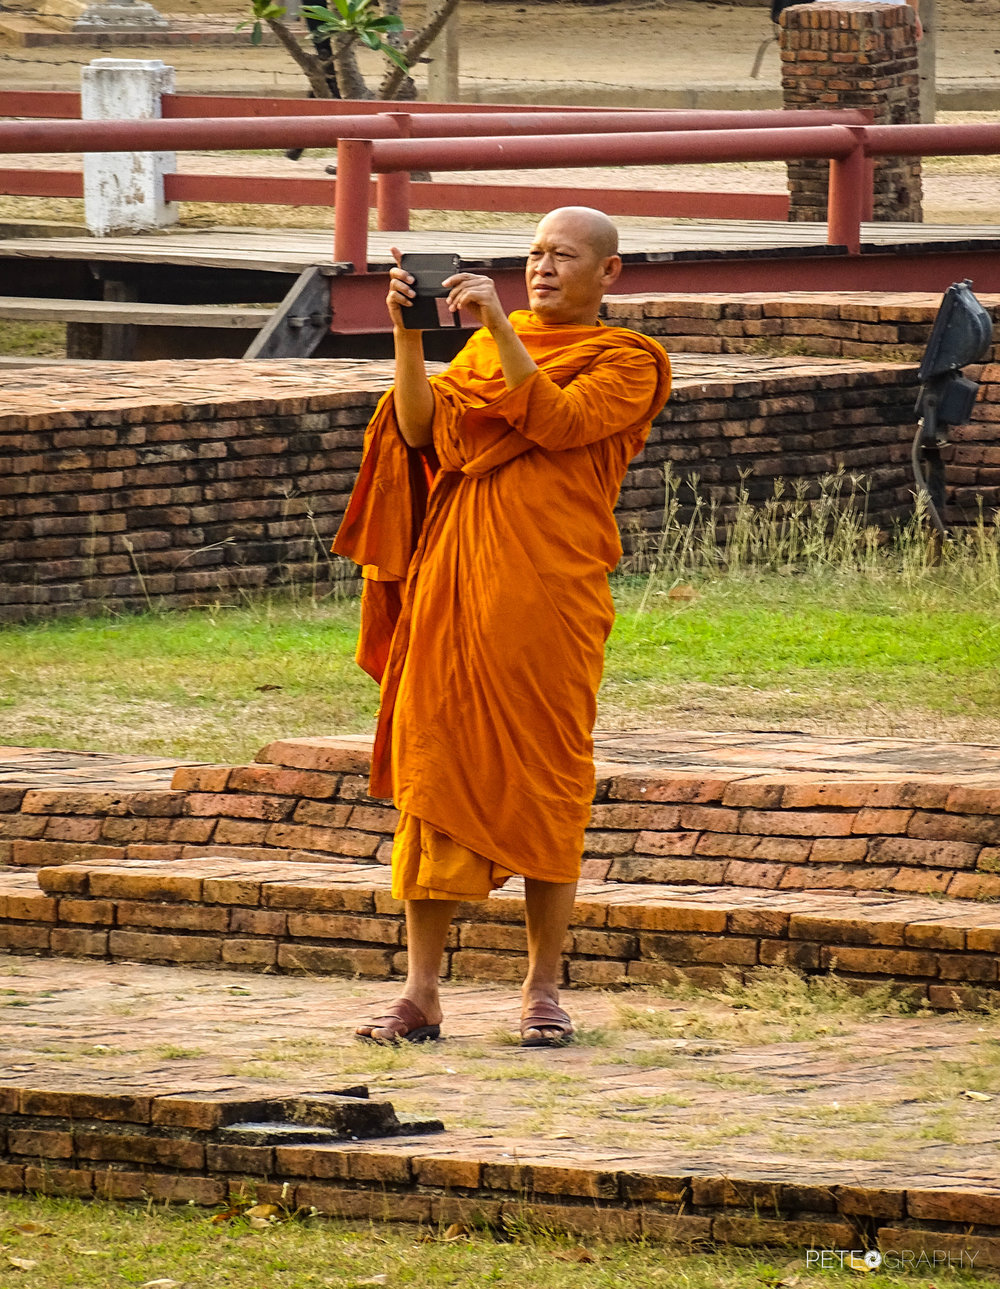 MONK WITH A PHONE